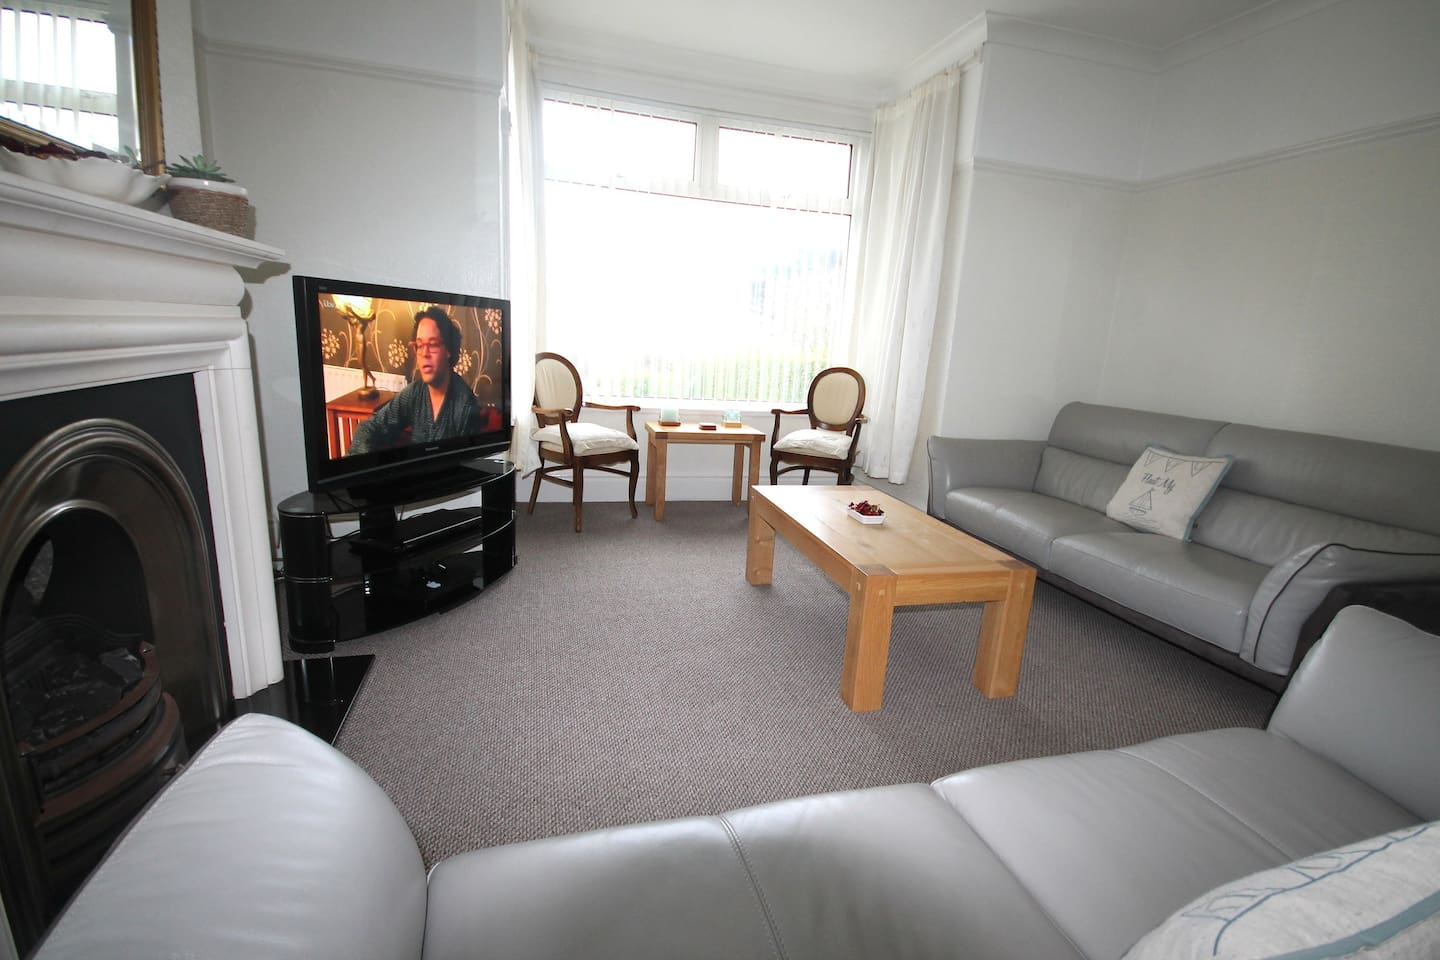 1 bedroom accommodation, full use of ground floor, very private, 1st floor not in use when ground floor booked